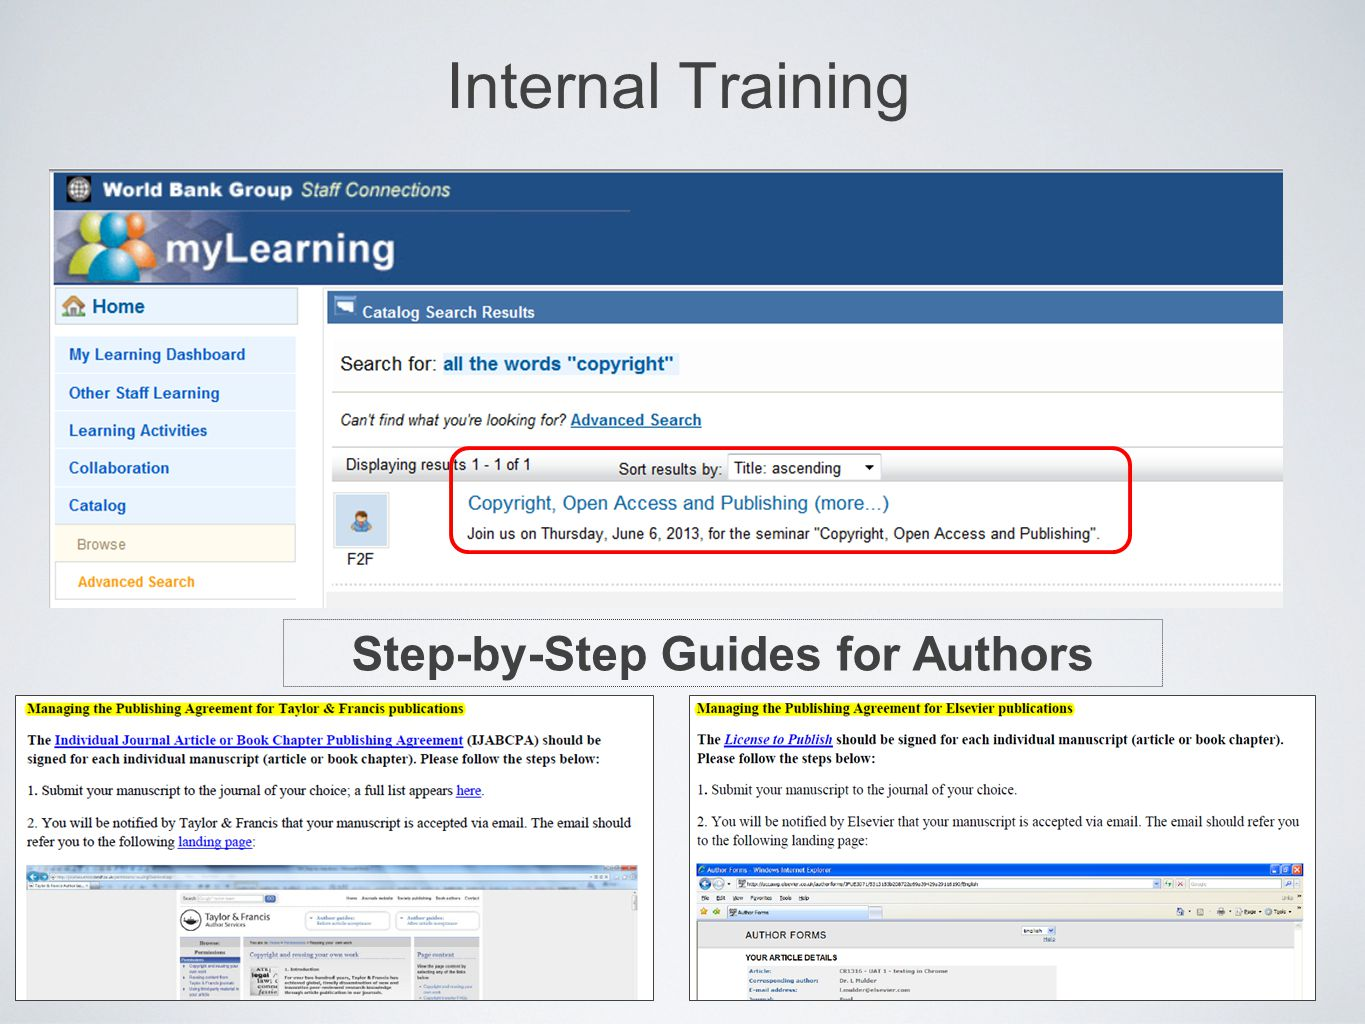 Internal Training Step-by-Step Guides for Authors